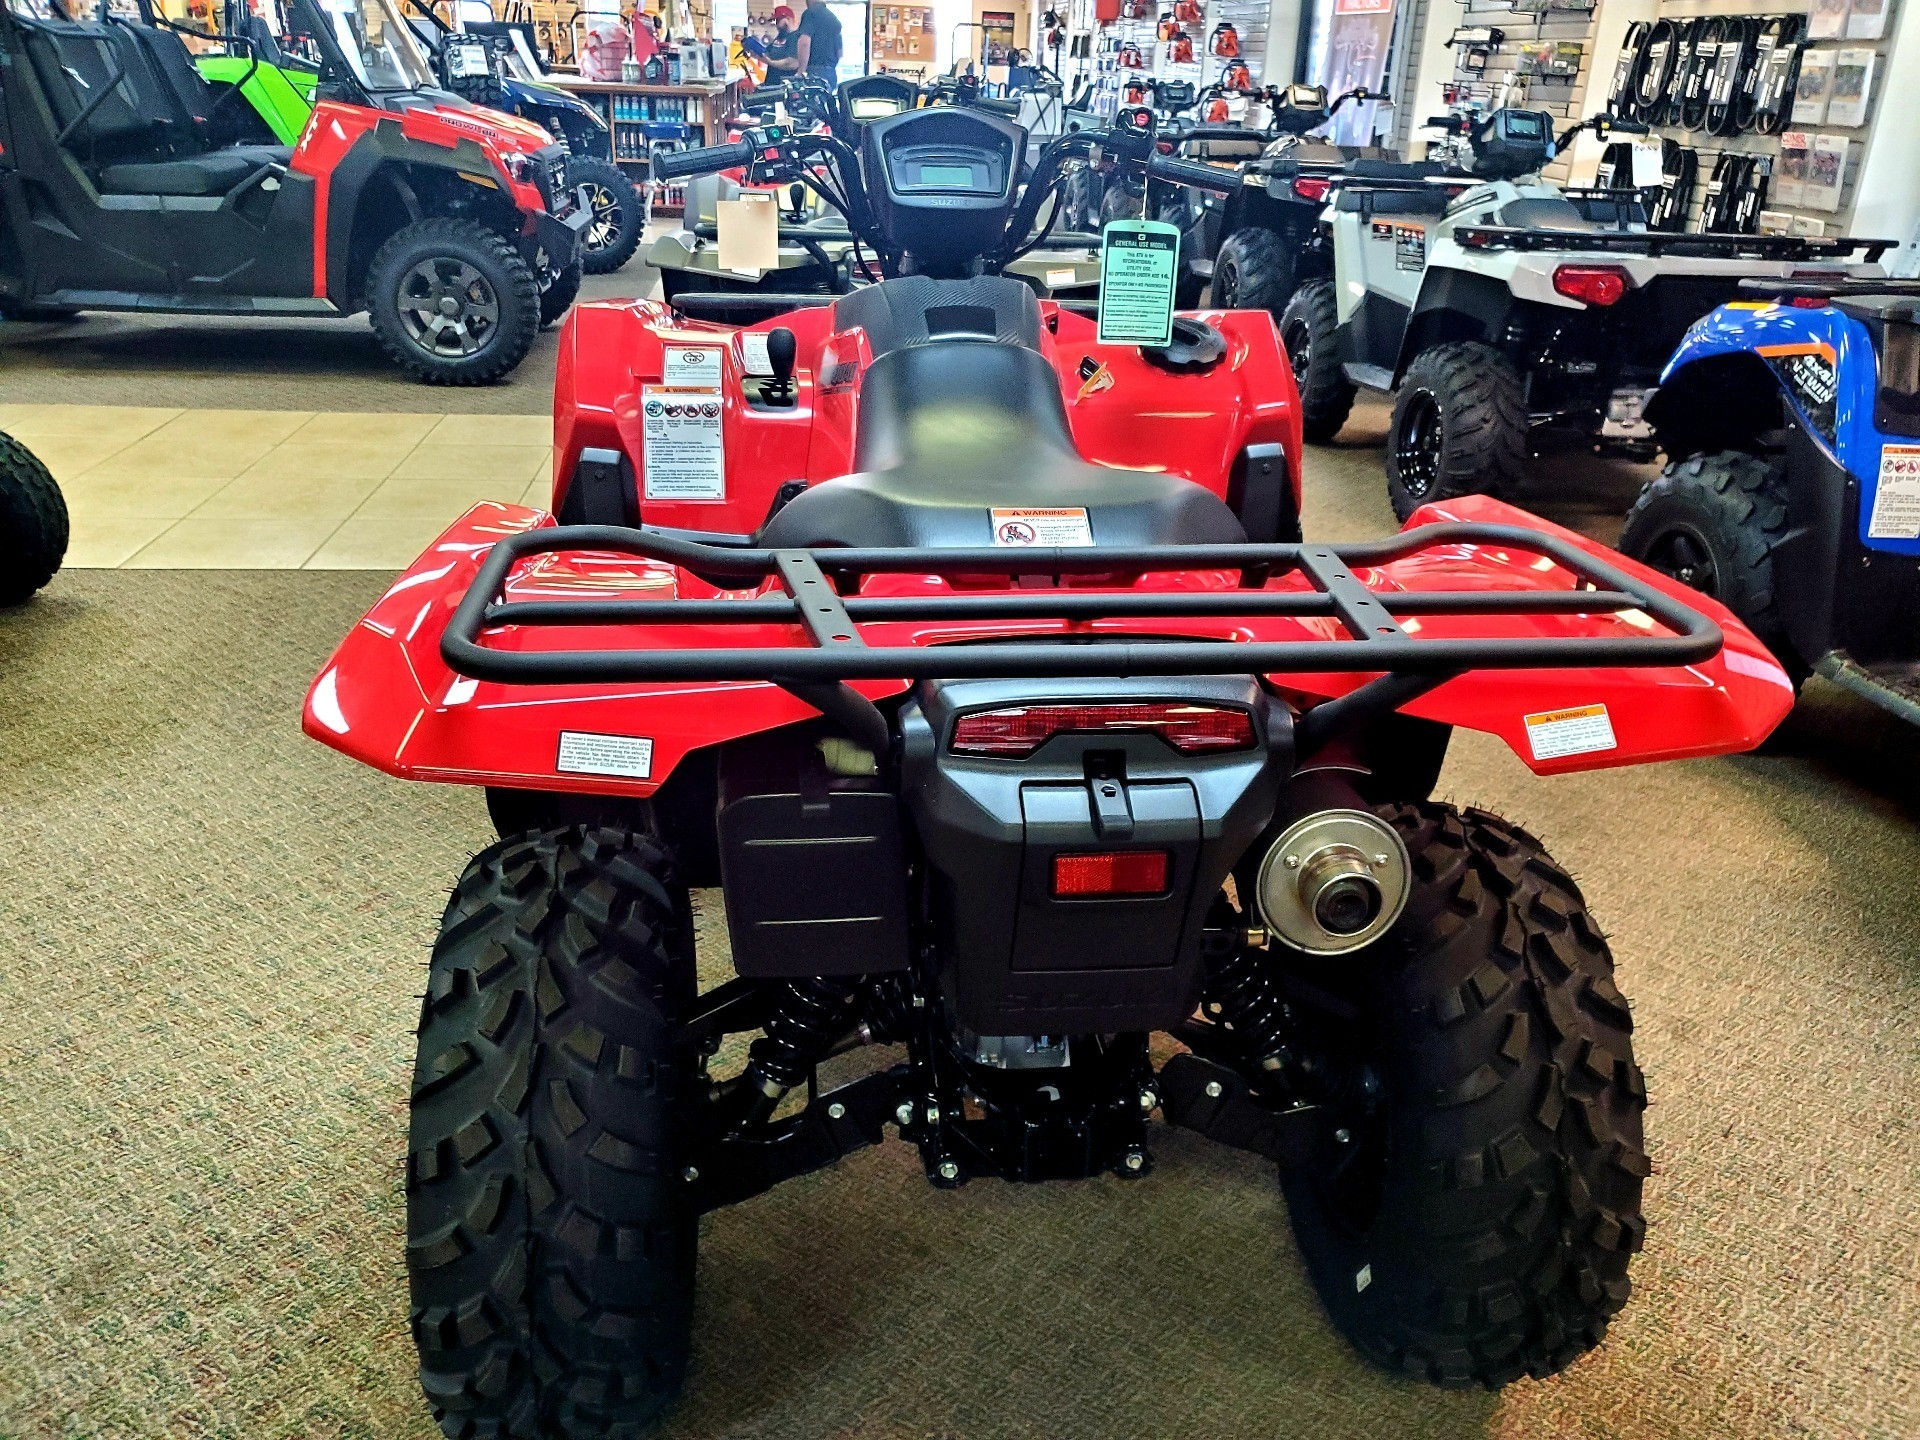 2020 Suzuki KingQuad 750AXi in Jackson, Missouri - Photo 4